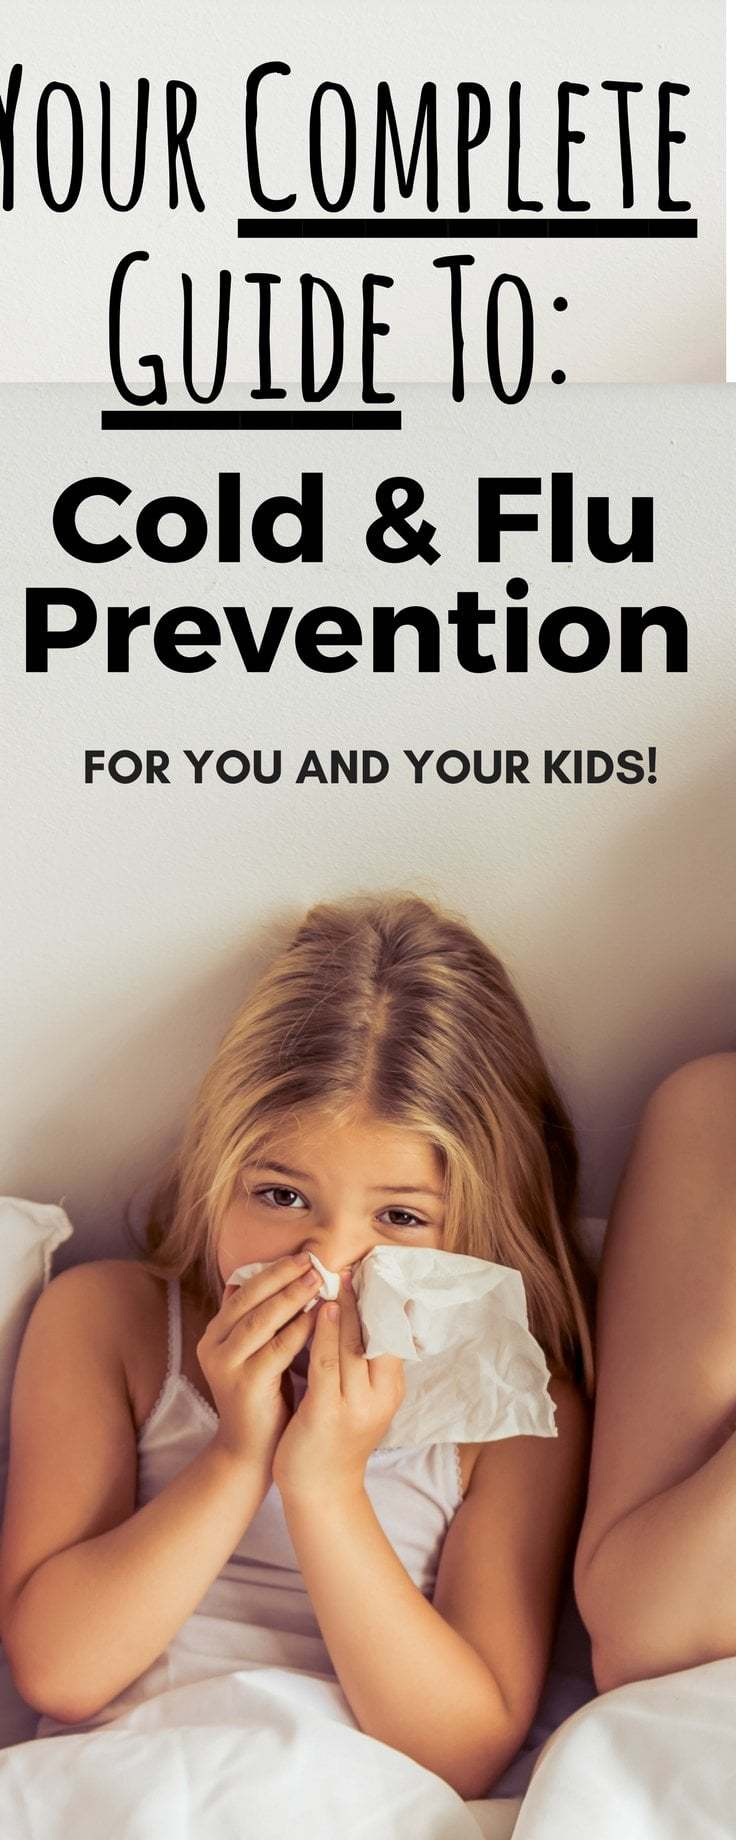 Best list of Cold and flu prevention tips you'll find! Over 30 tips in all with explanations for why some really work!  | Cold and flu prevention for kids, Cold and flu prevention products, Flu prevention, Flu remedies, Cold remedies